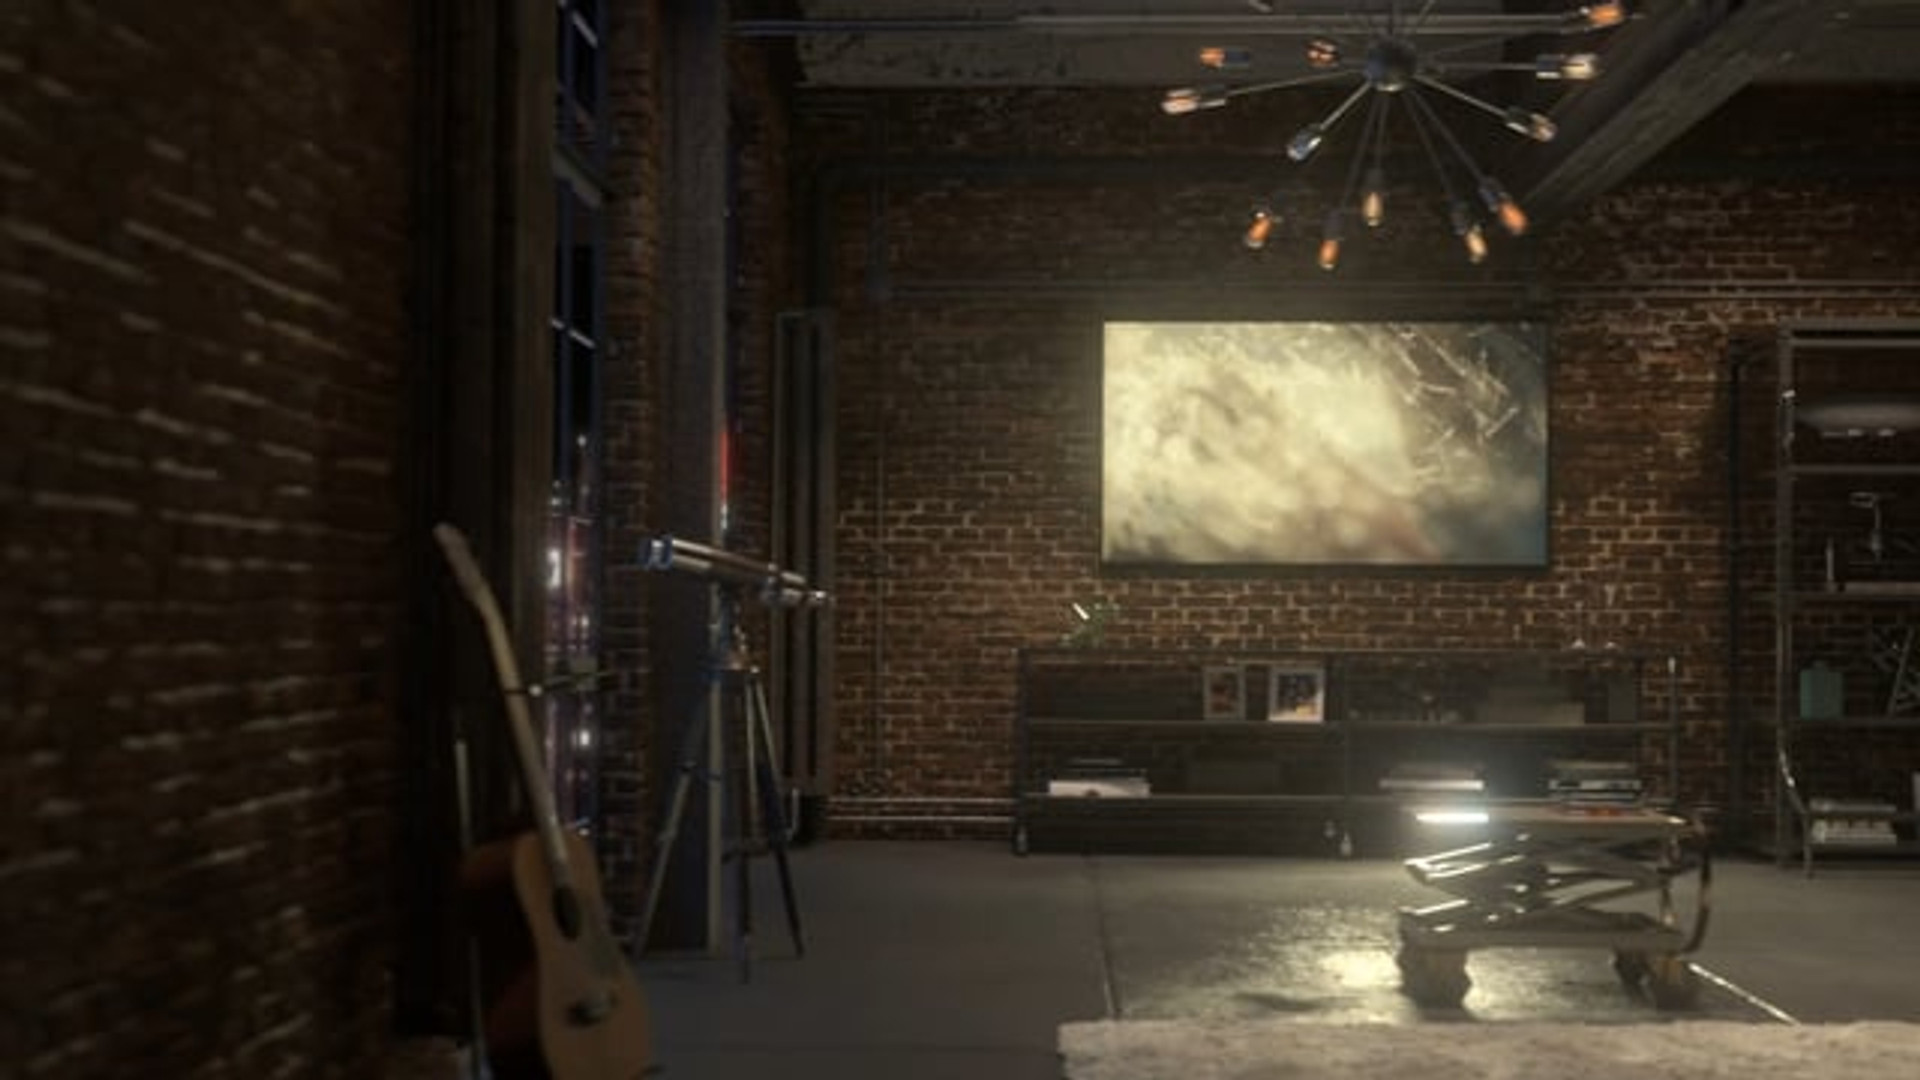 Lighting Test AT&T Commercial